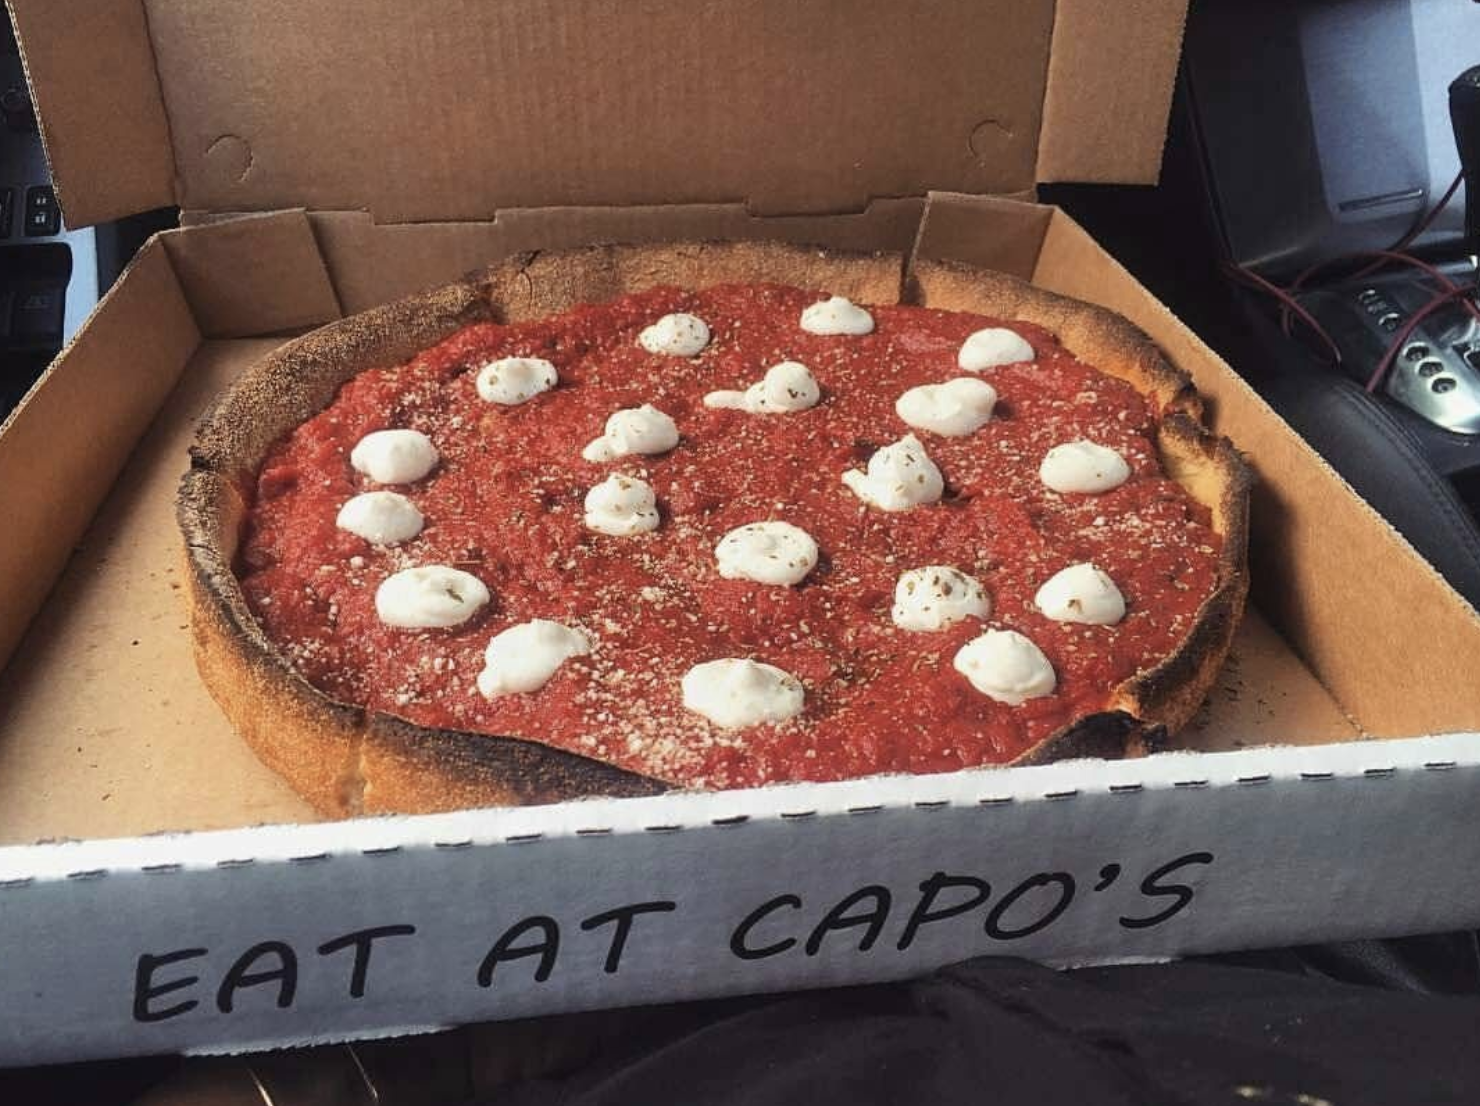 Where is the best pizza in san francisco? Capos